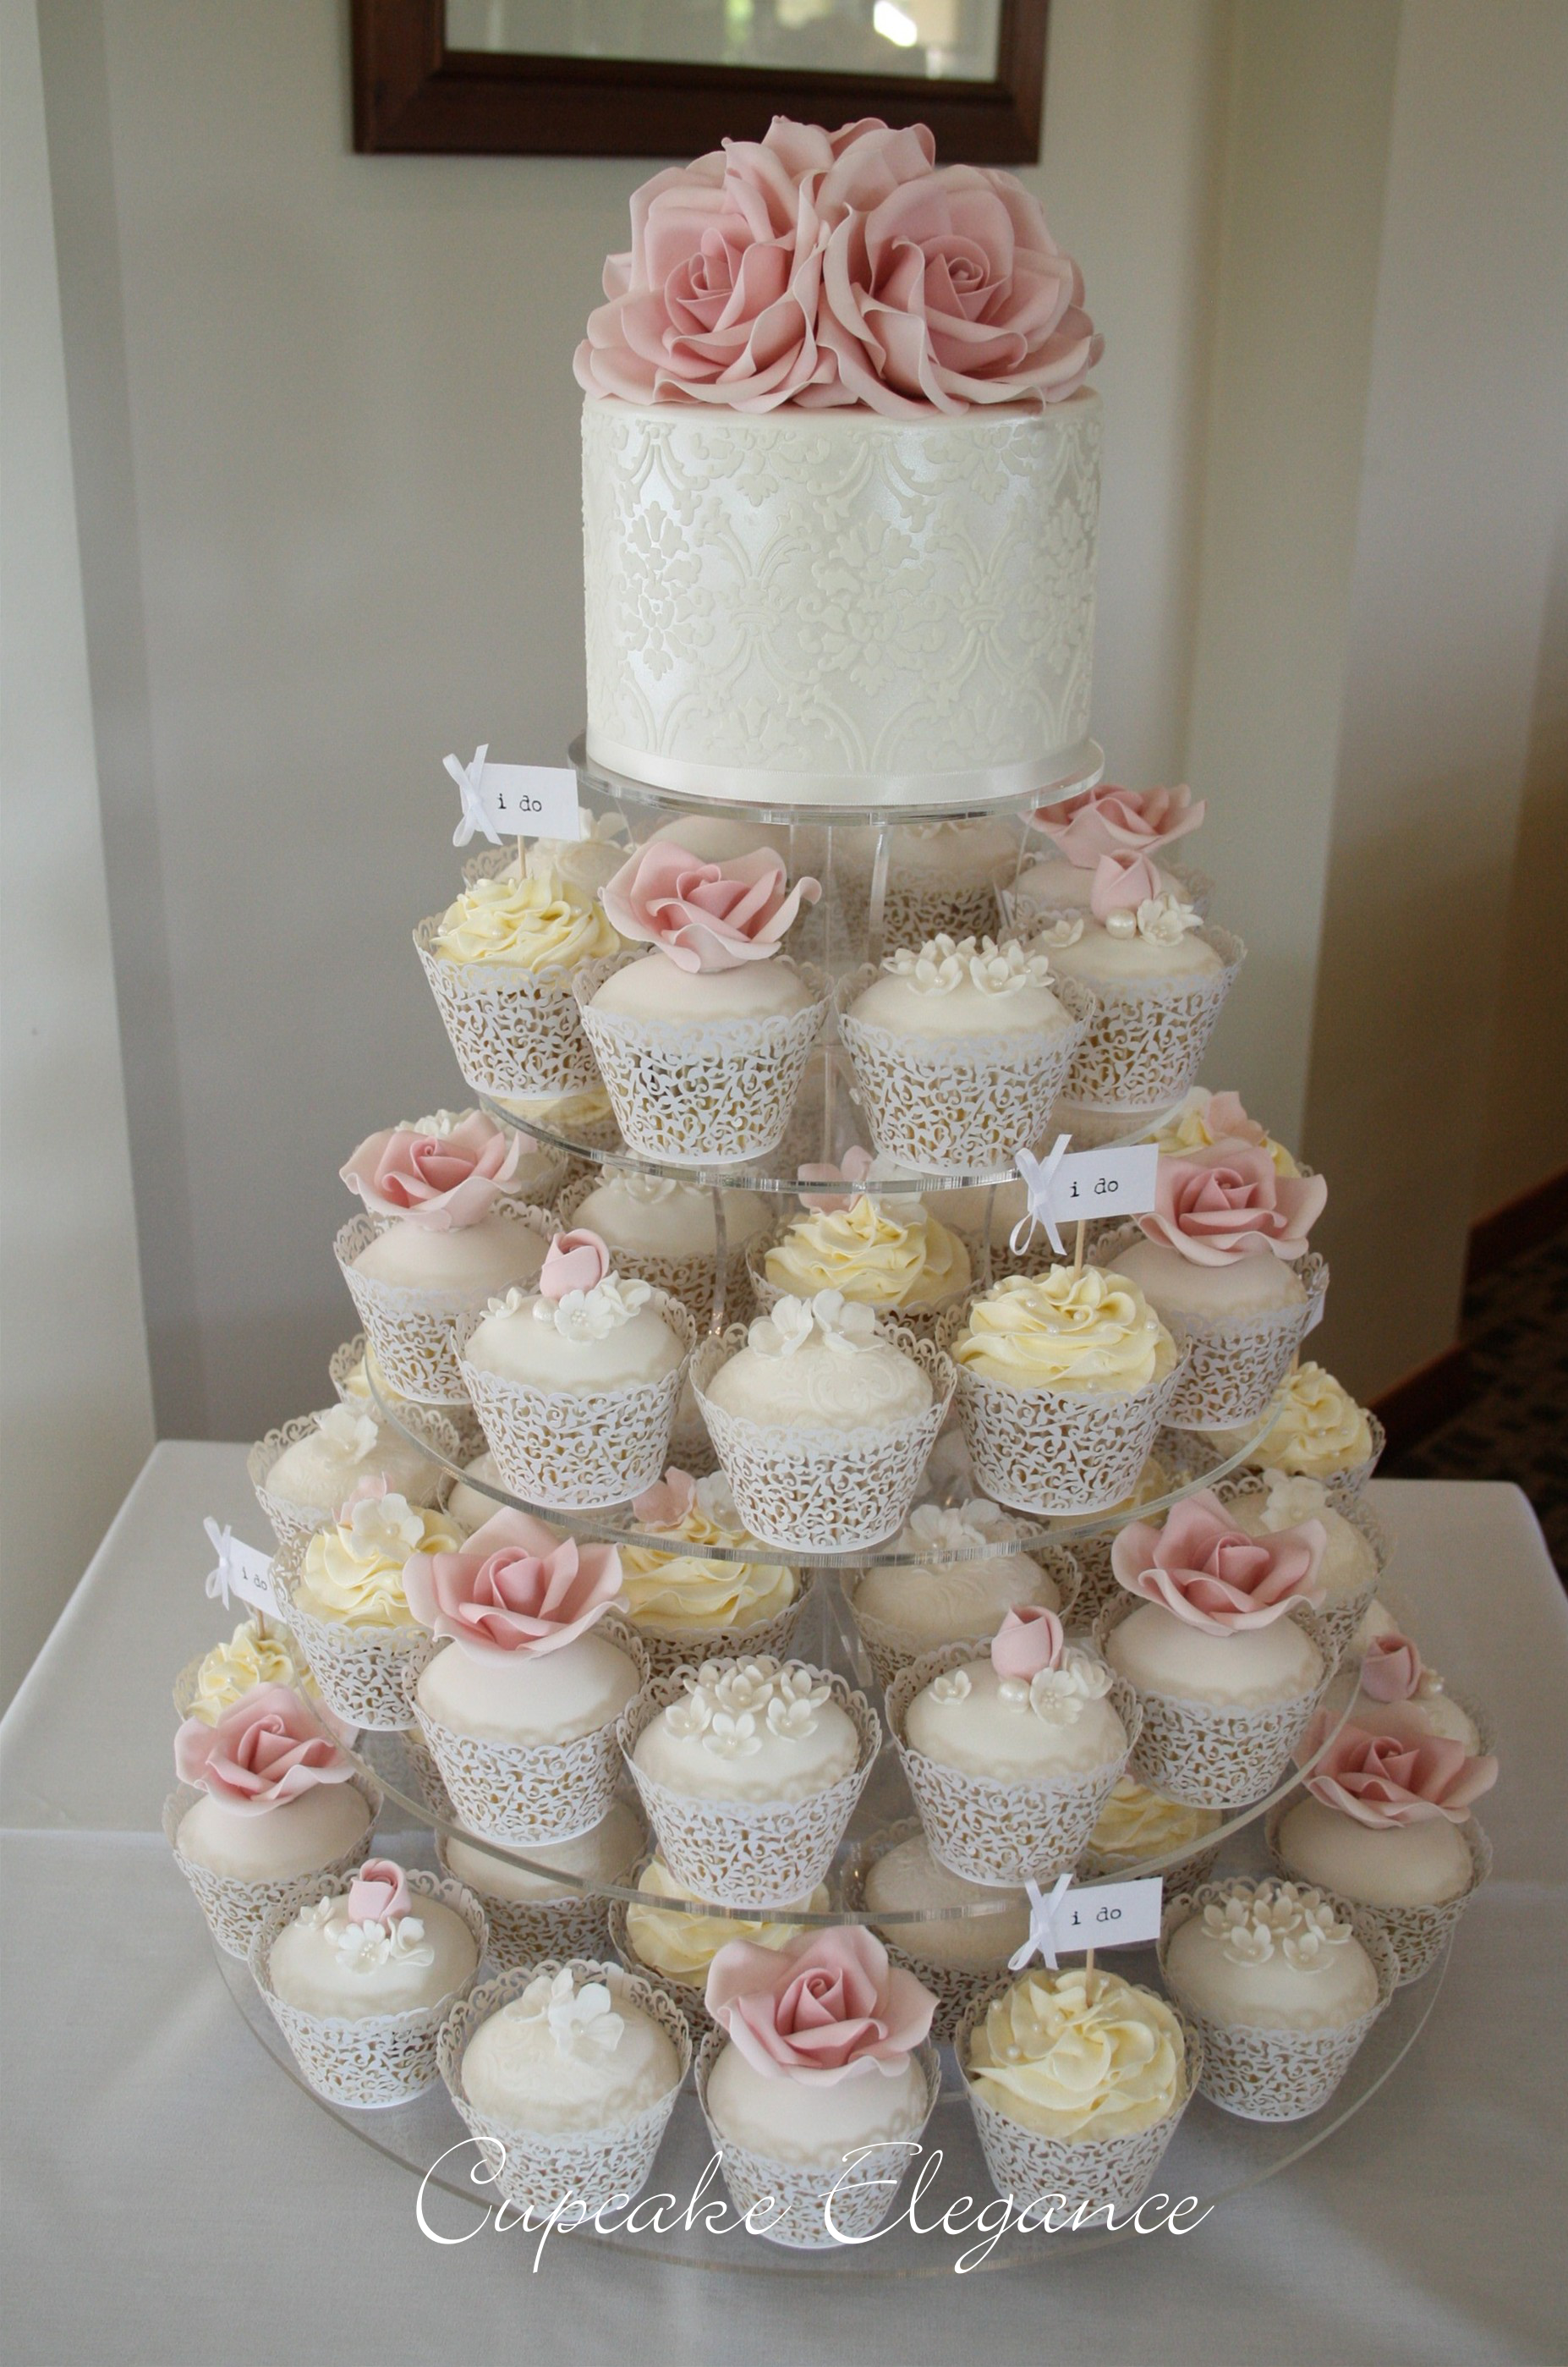 easy wedding cake cupcakes wedding cake ideas soft pink roses with pearls and lace 13836